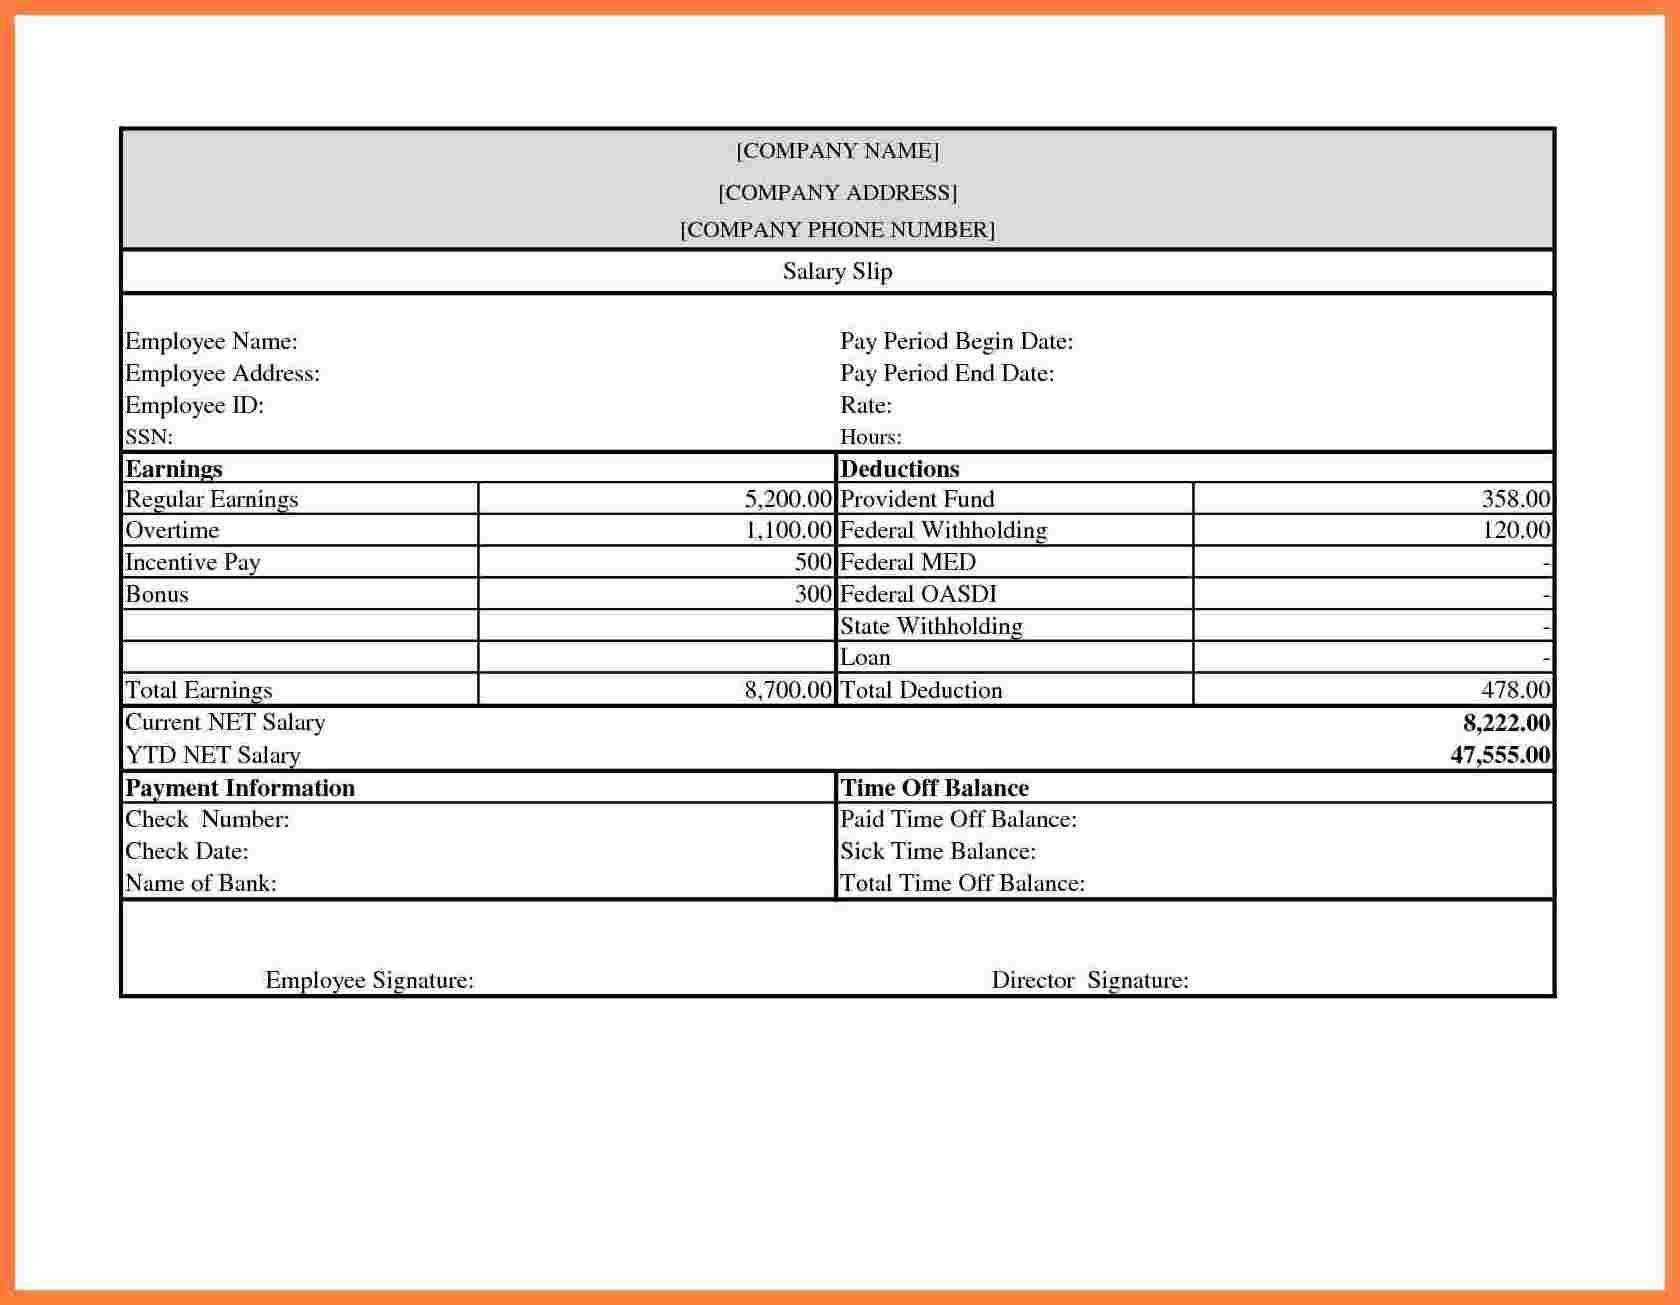 Salary Slip Template In Excel Free Download